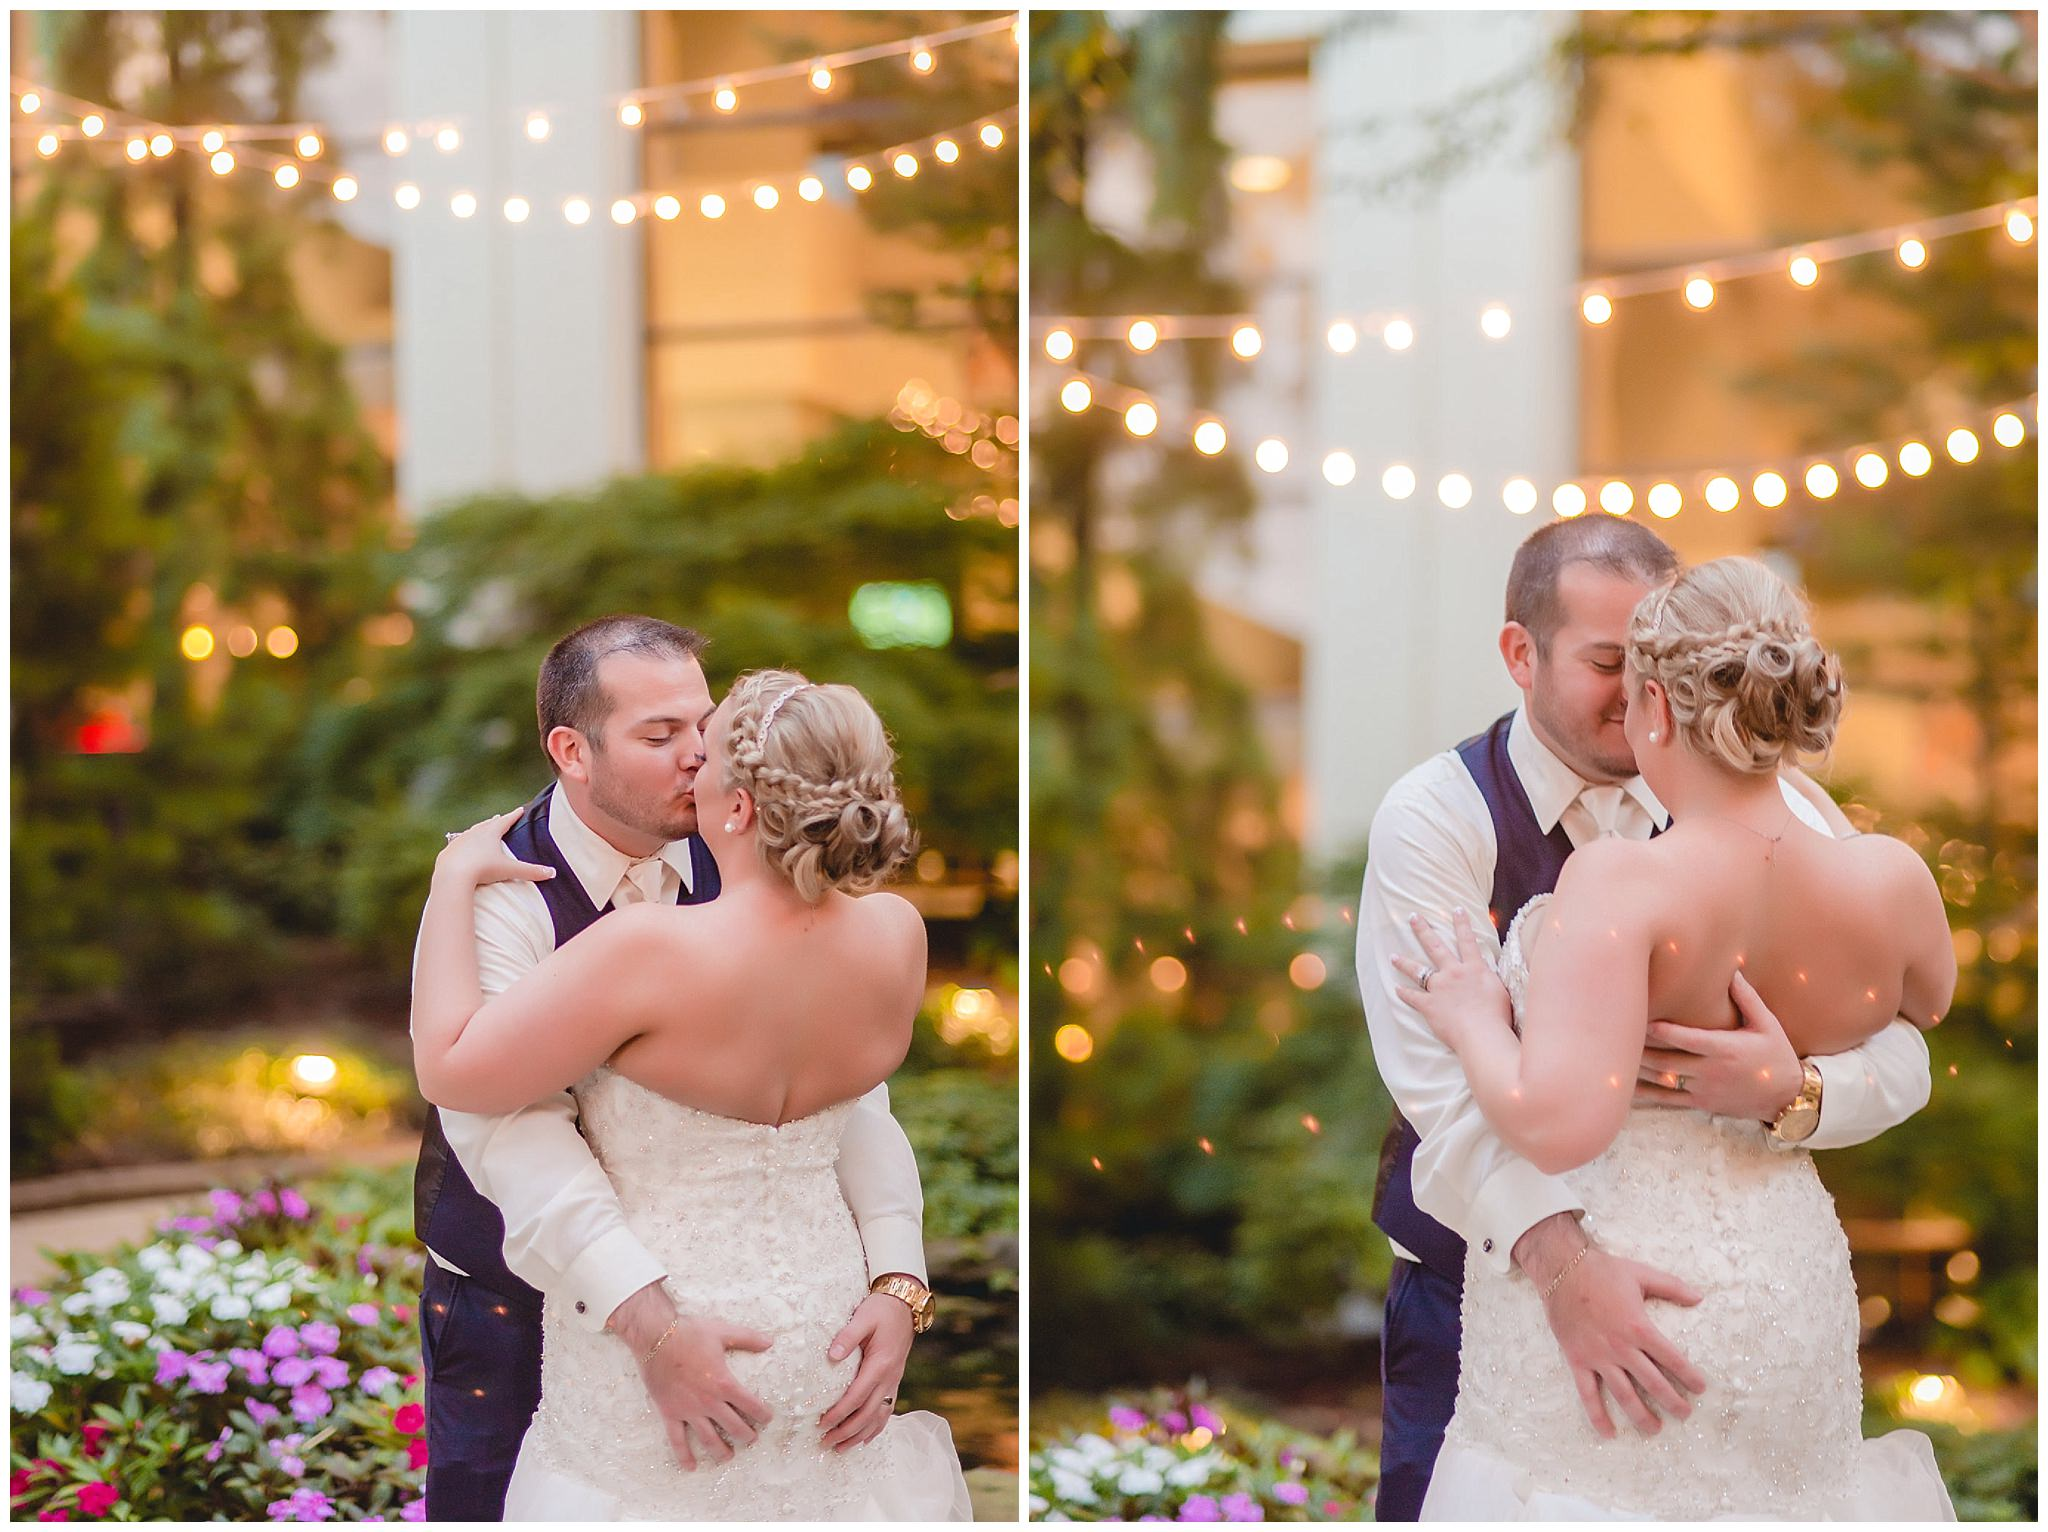 Groom playfully grabs his bride during evening portraits at the Pittsburgh Airport Marriott